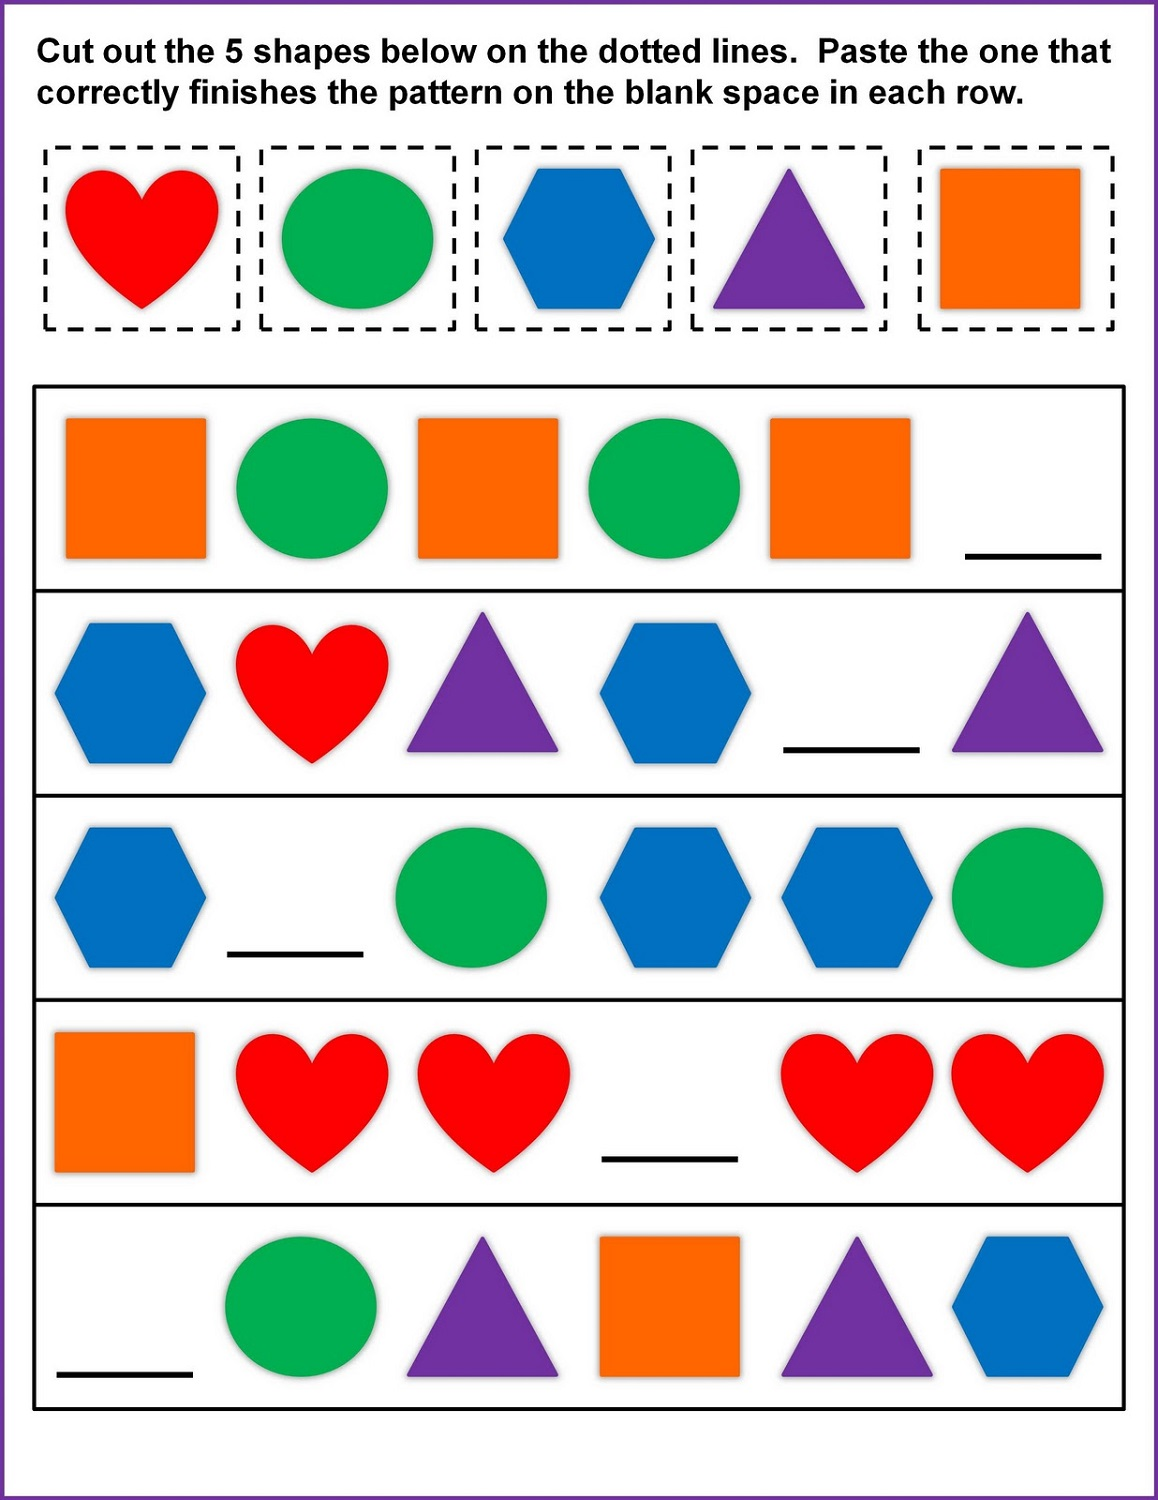 shapes-worksheets-for-kids-pattern